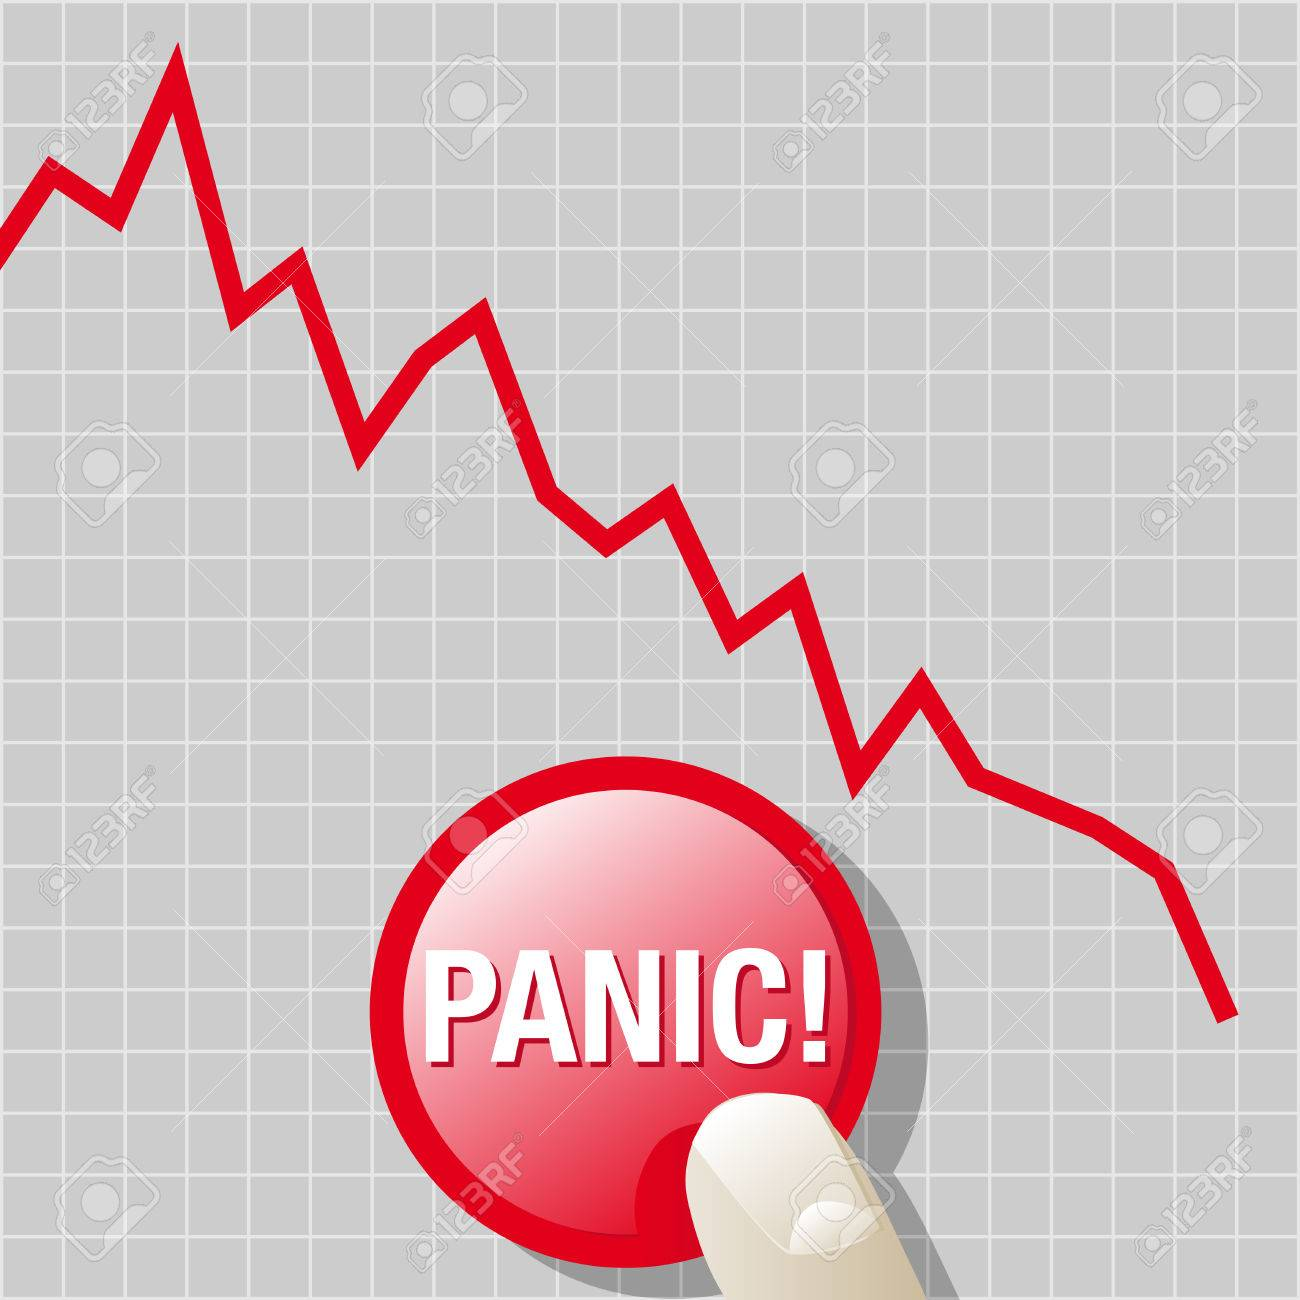 5612257-Abstract-vector-illustration-of-a-downward-graph-with-a-finger-on-a-panic-button-Stock-Vector.jpg